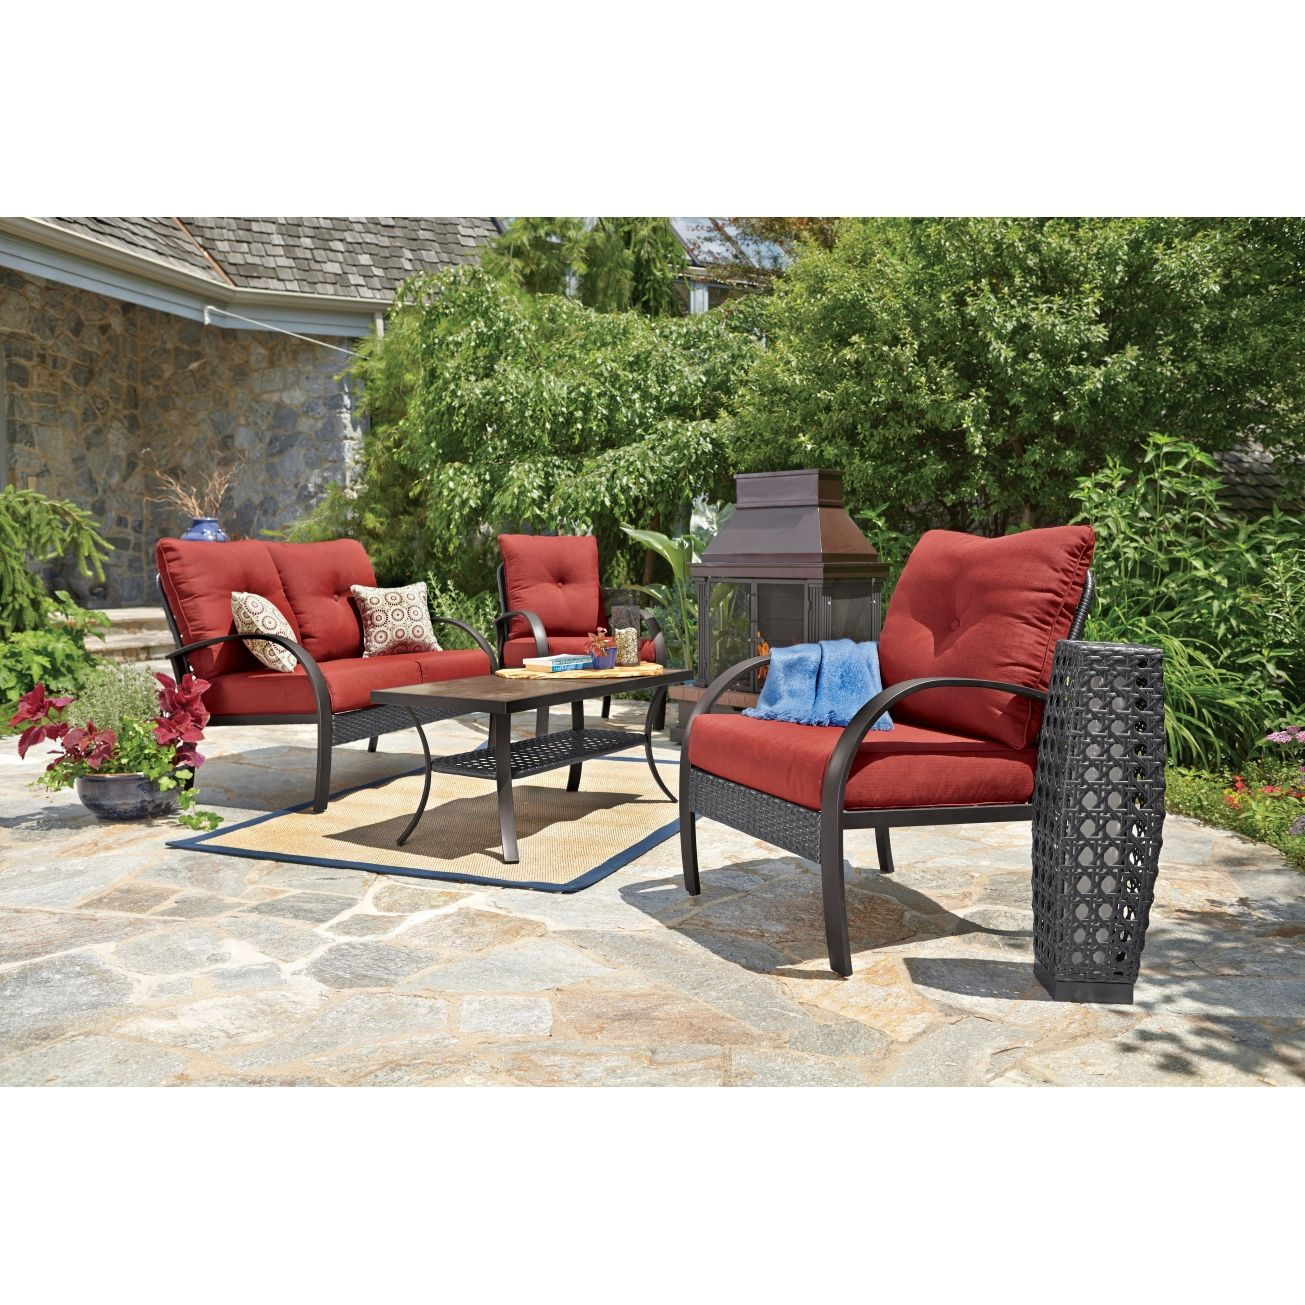 Anderson 4 Pc. Deep Seating Set - All Patio Collections ...